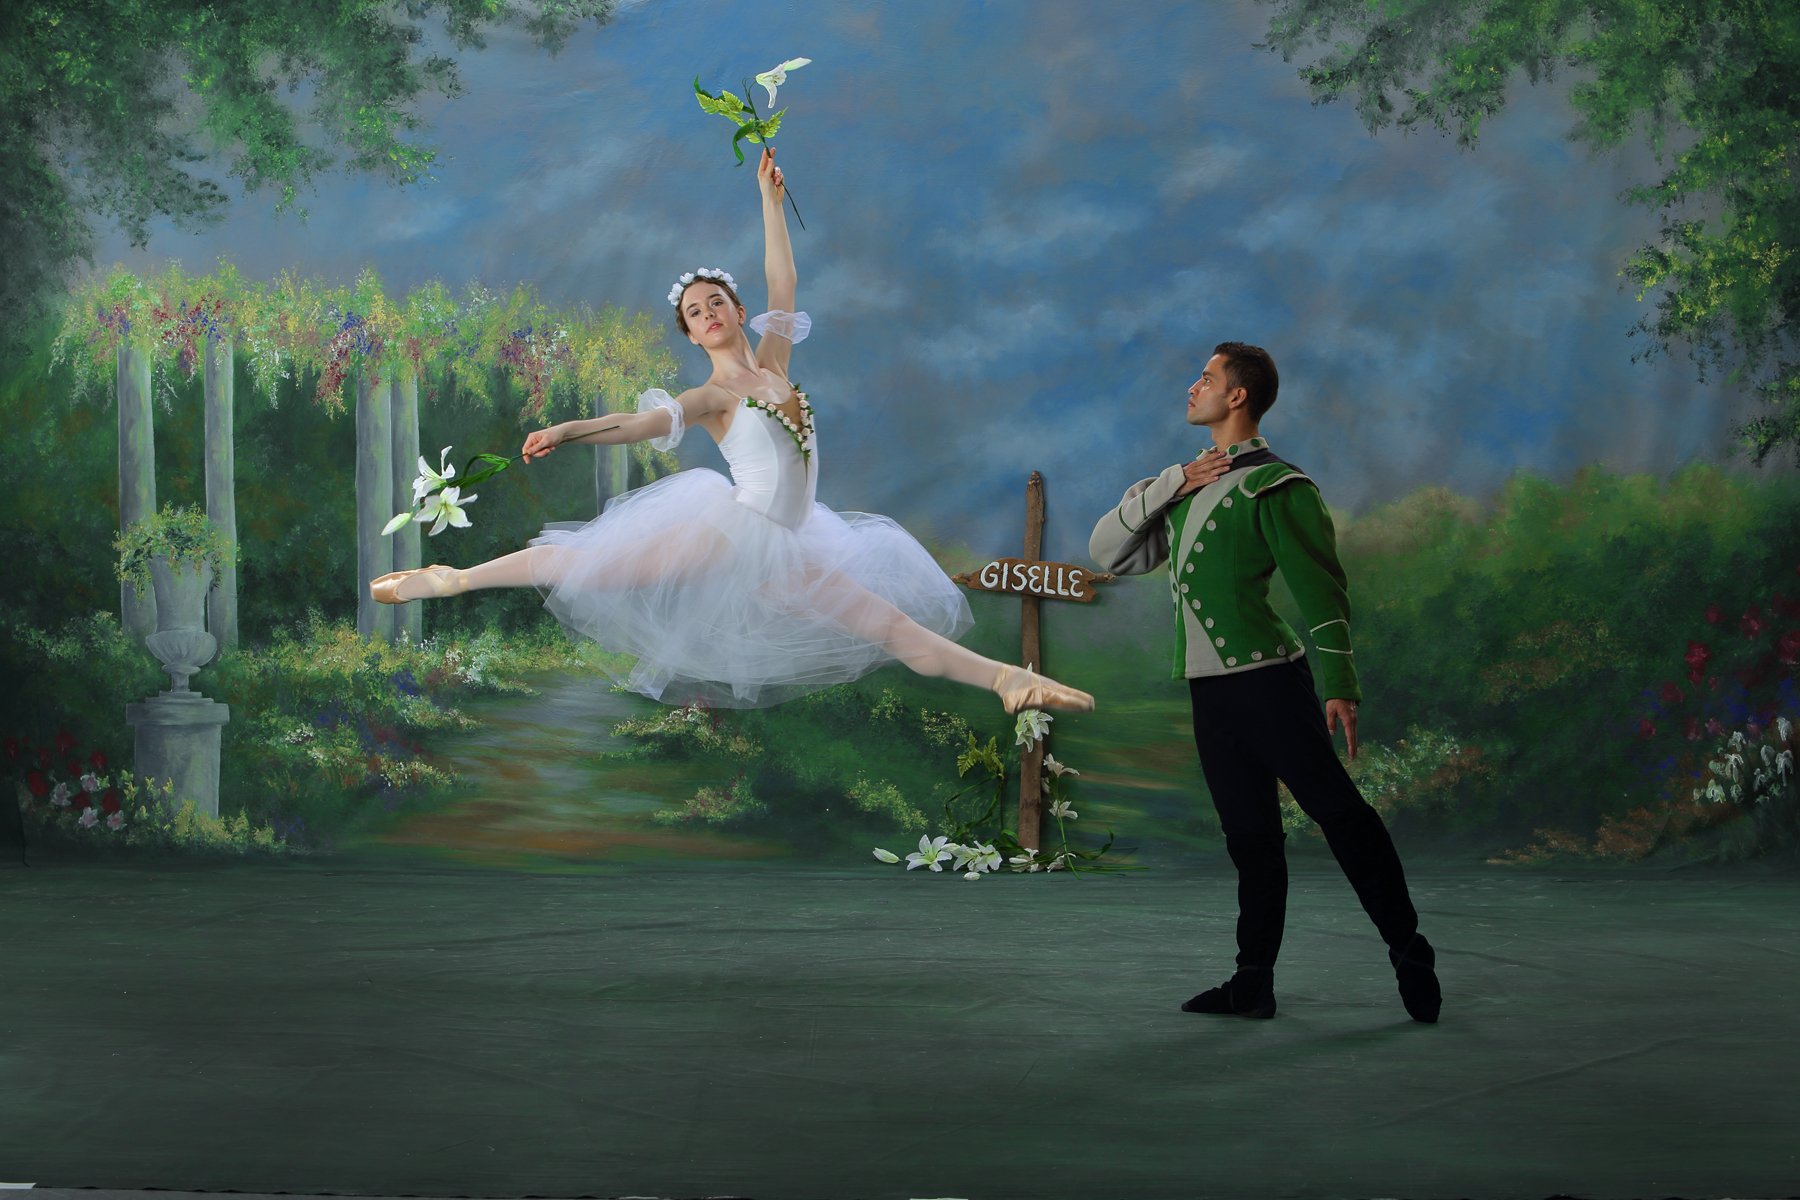 Giselle Spring Performance